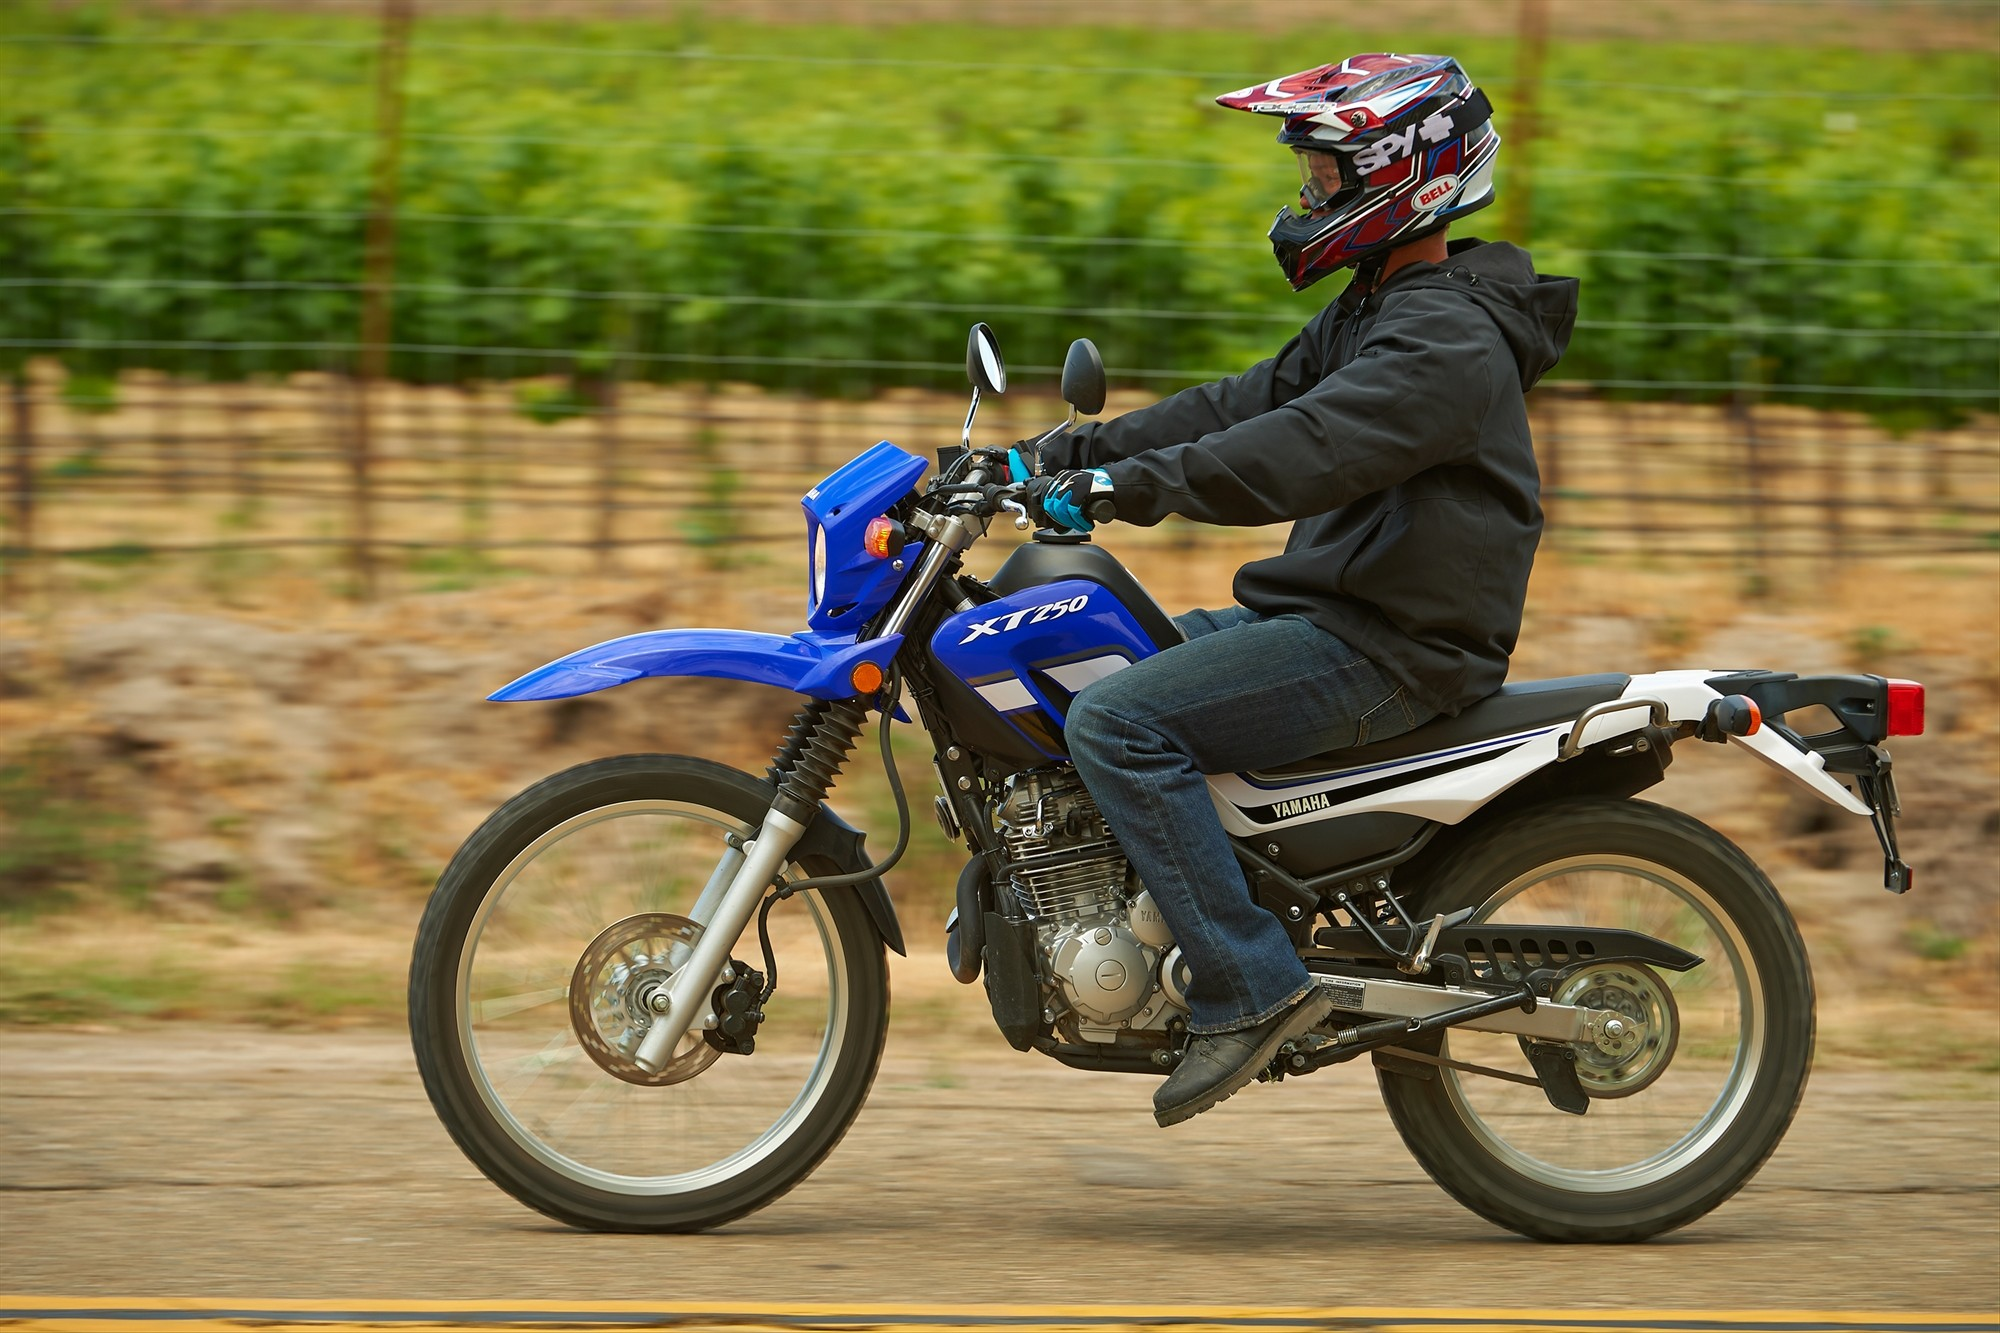 Yamaha Xt250 Recalled For Multiple Failure Potential